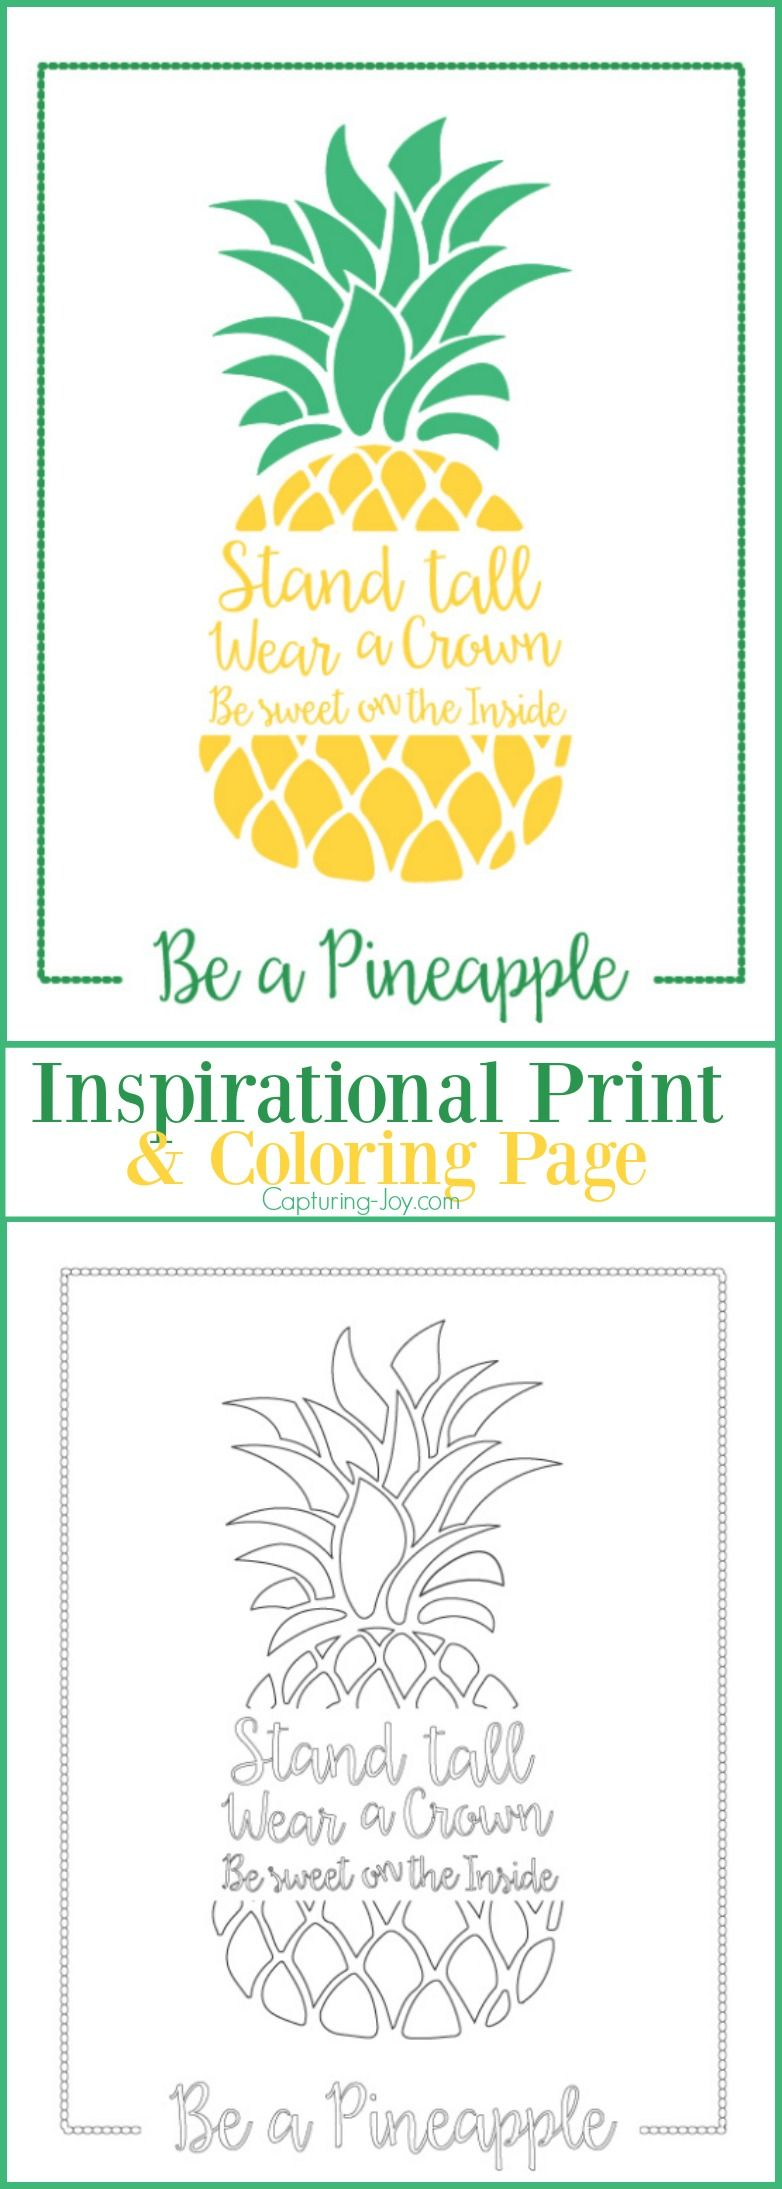 Coloring pages inspirational - Be A Pineapple Inspirational Print And Coloring Page Summer Boredom Boredom Busters And Inspirational